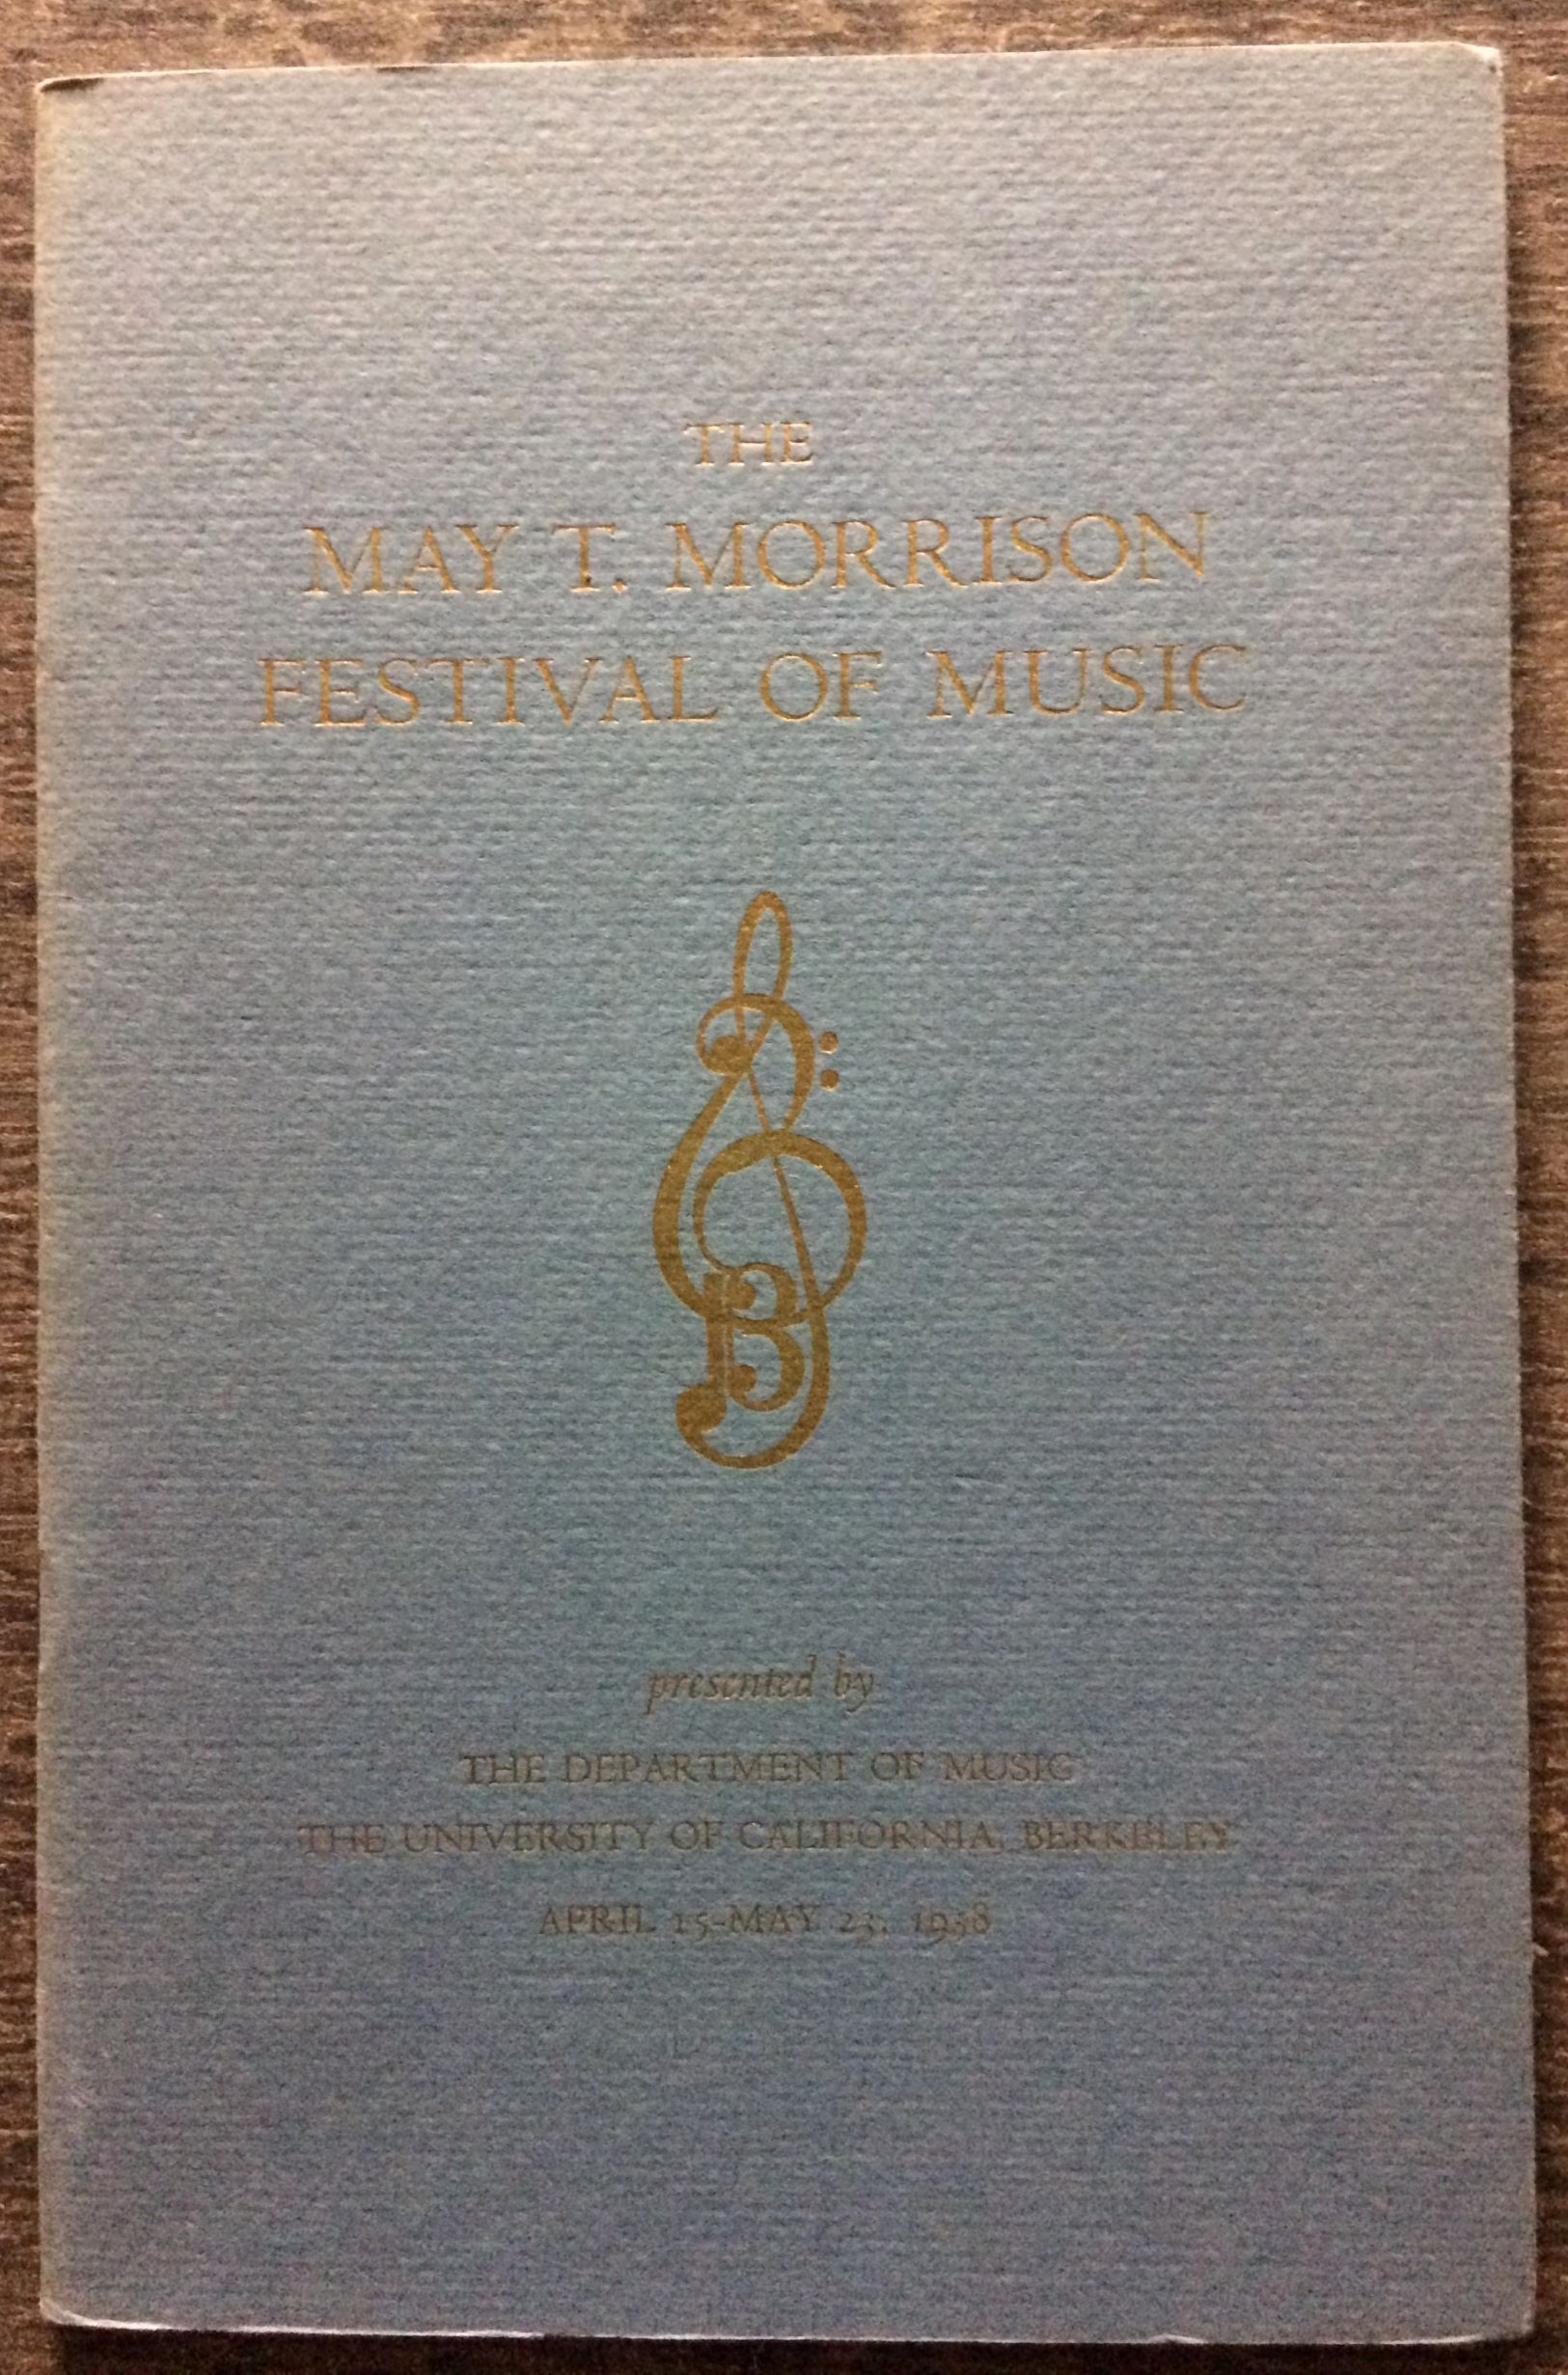 Image for The May T. Morrison Festival of Music, dedicating the May T. Morrison Hall, the Alfred Hertz Memorial Hall of Music, the Edmond O'Neill Memorial Organ, the Ansley Salz Collection of Instruments.